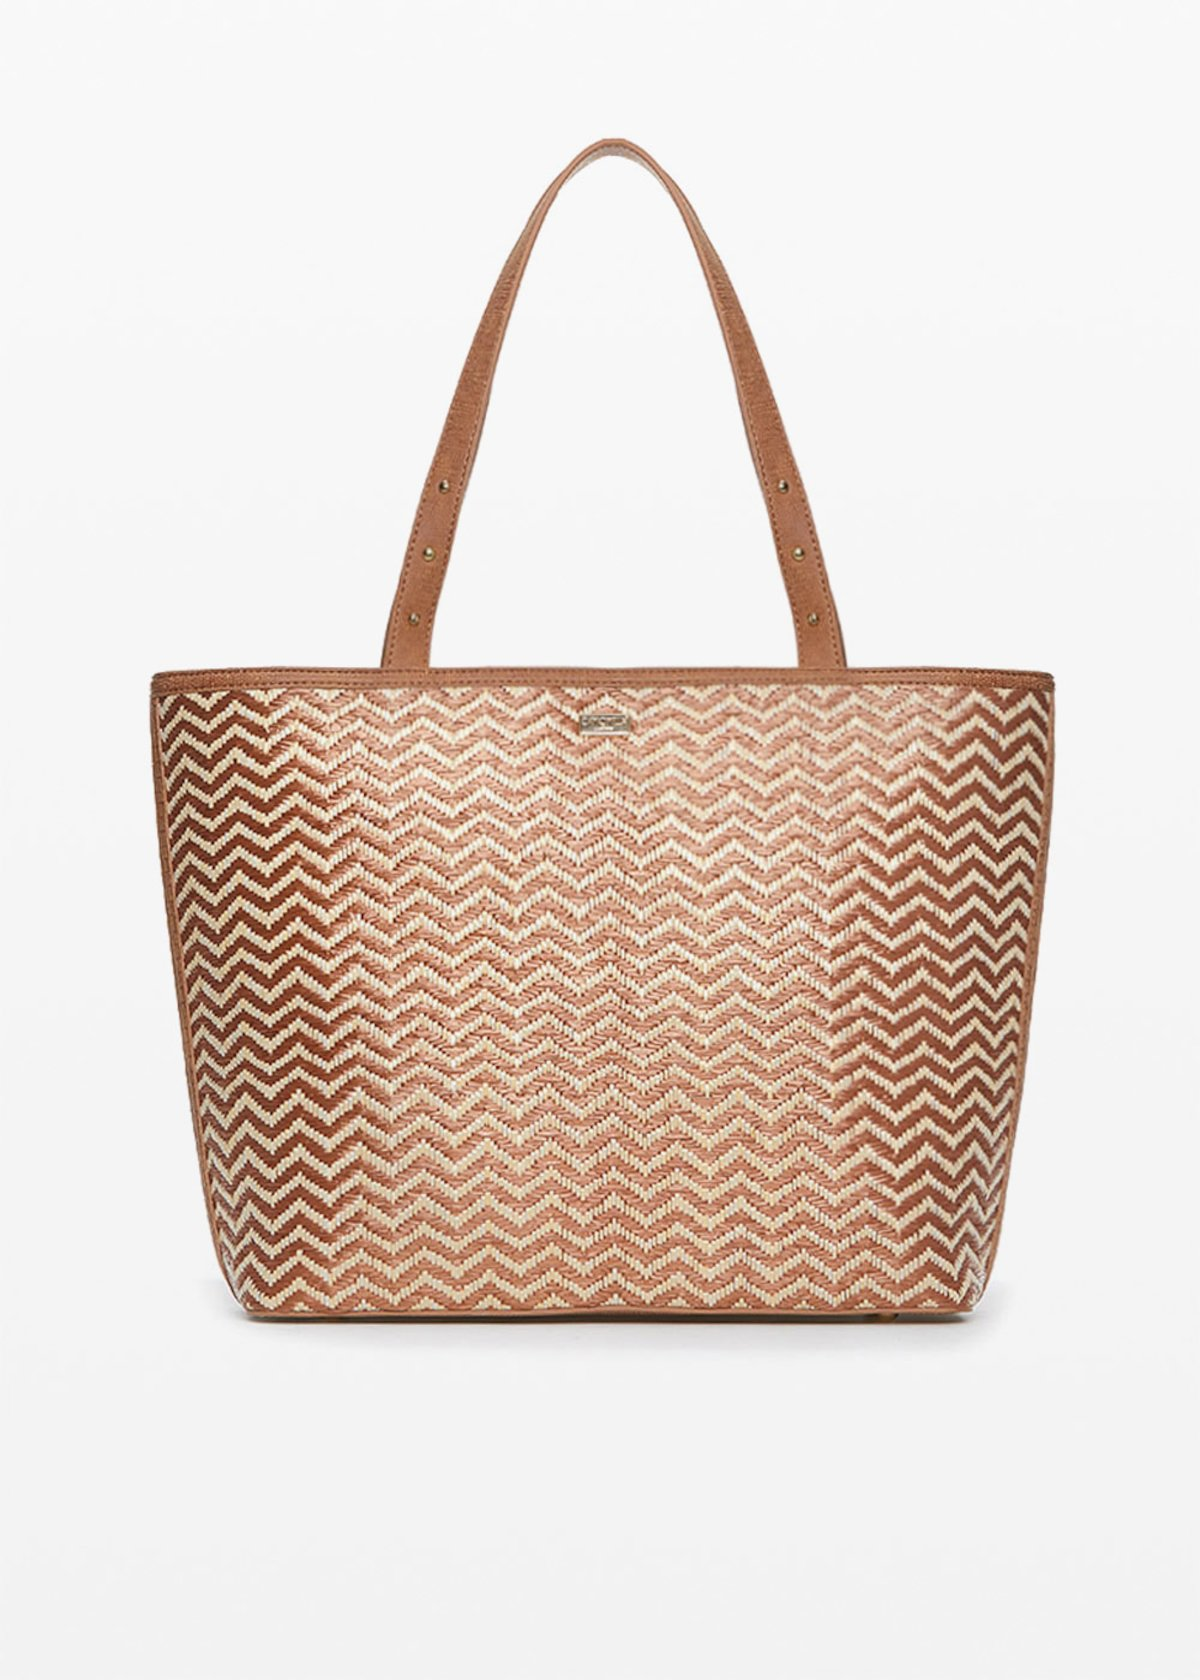 Faux leather and straw Brigitte shopping bag zigzag design - Lion / Safari - Woman